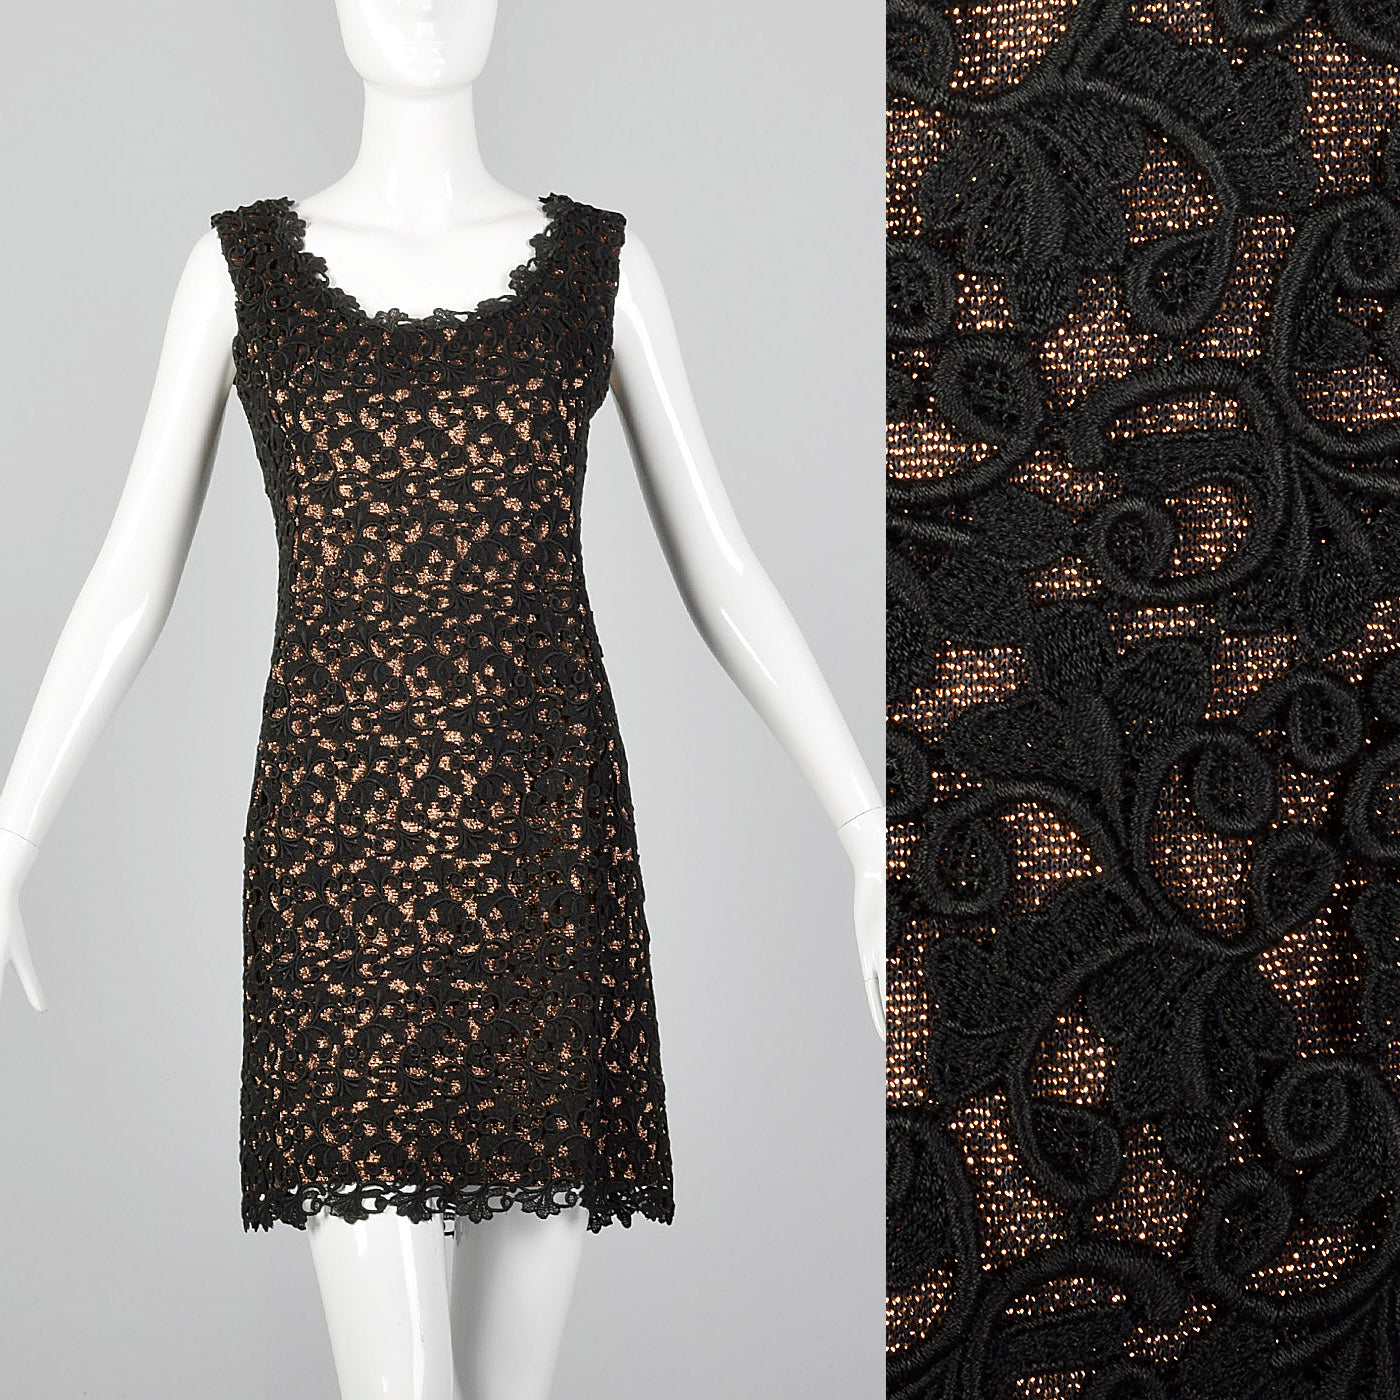 1960s Bronze Lurex Dress with Black Lace Overlay